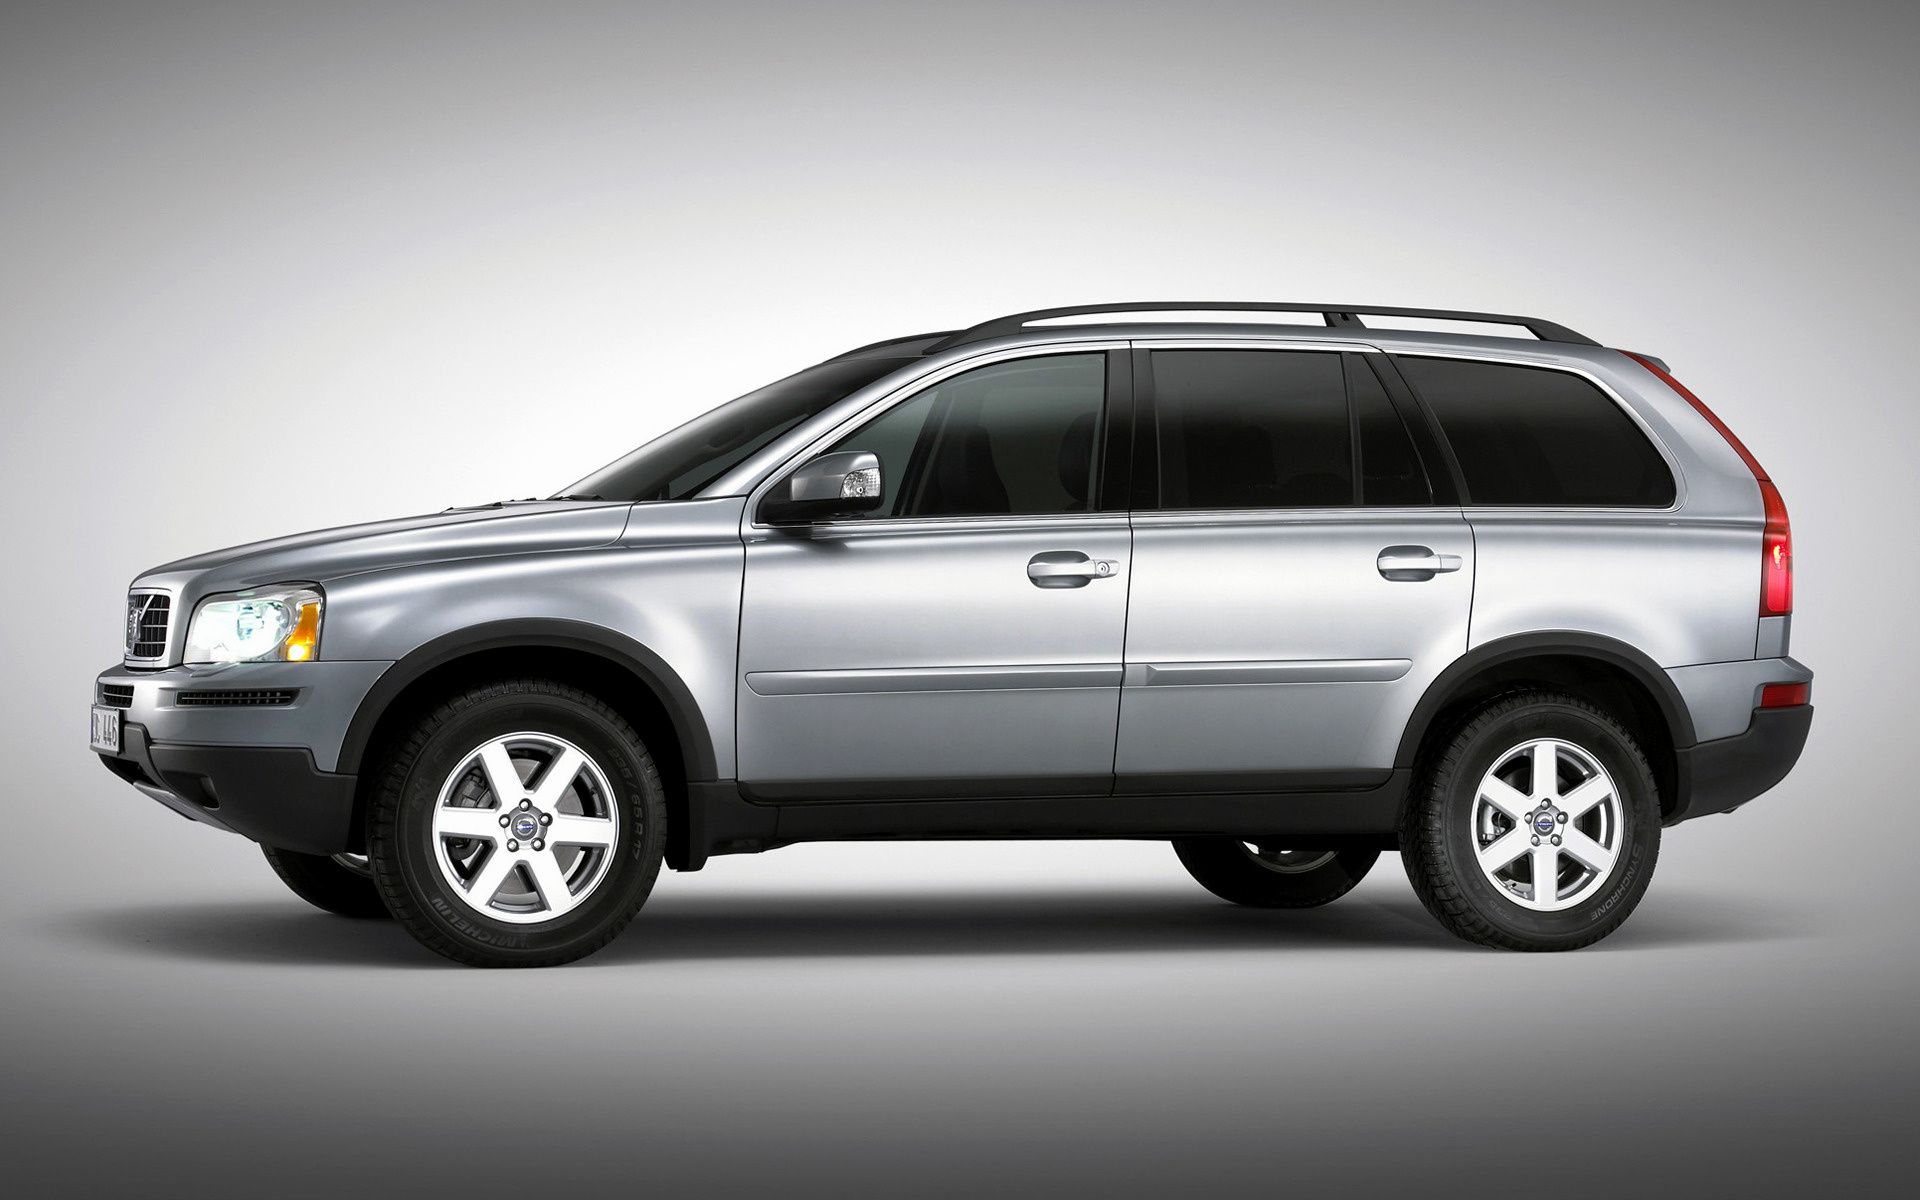 Volvo XC90 (2007) Wallpapers and HD Images - Car Pixel